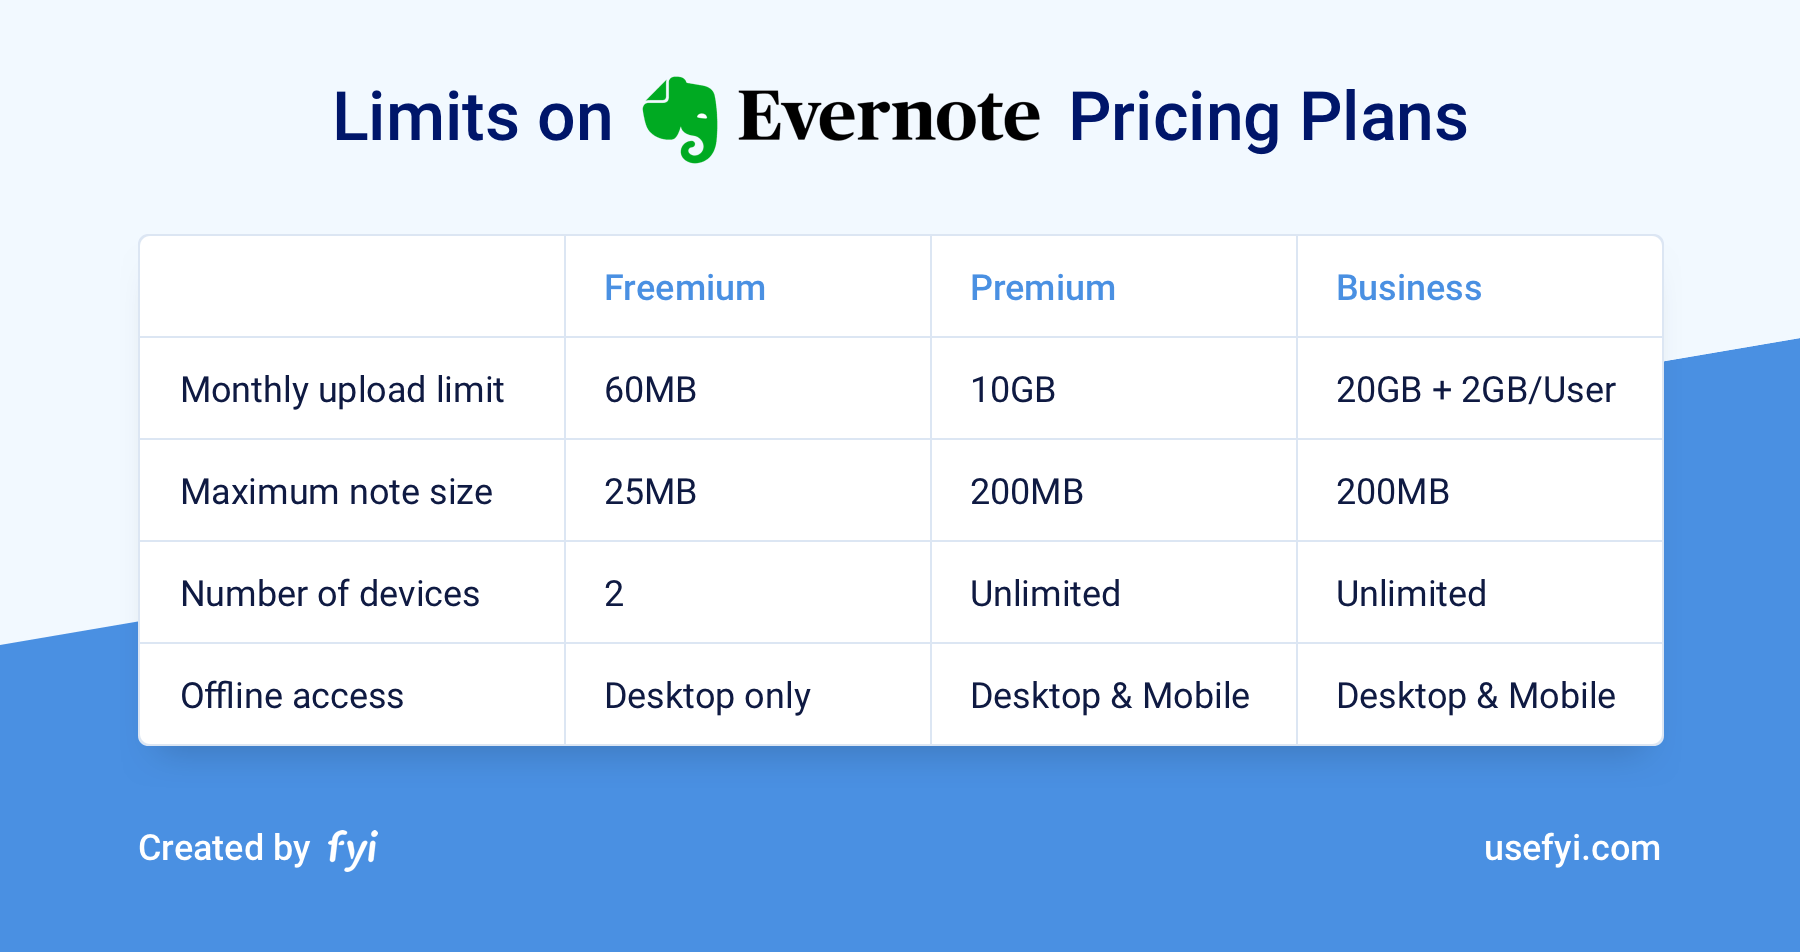 Evernote Pricing Plan Limits